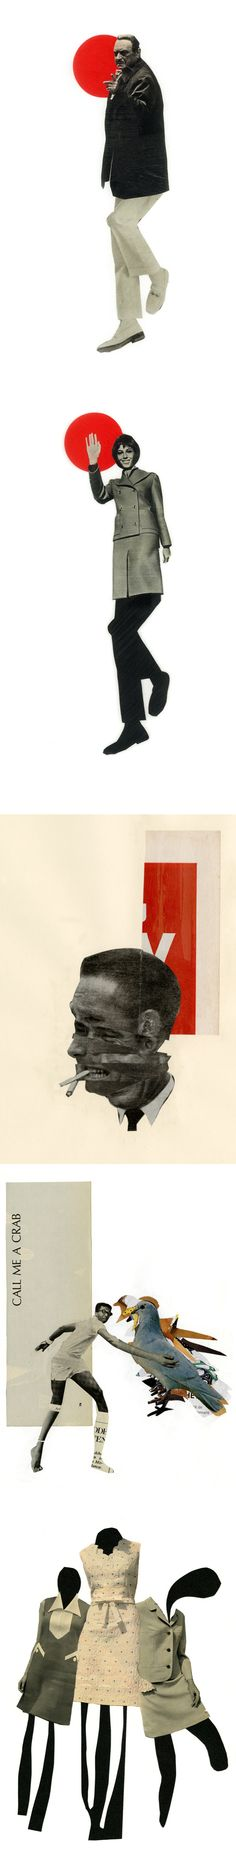 Collages from JP King, via the Jealous Curator blog. Especially love the third one down.